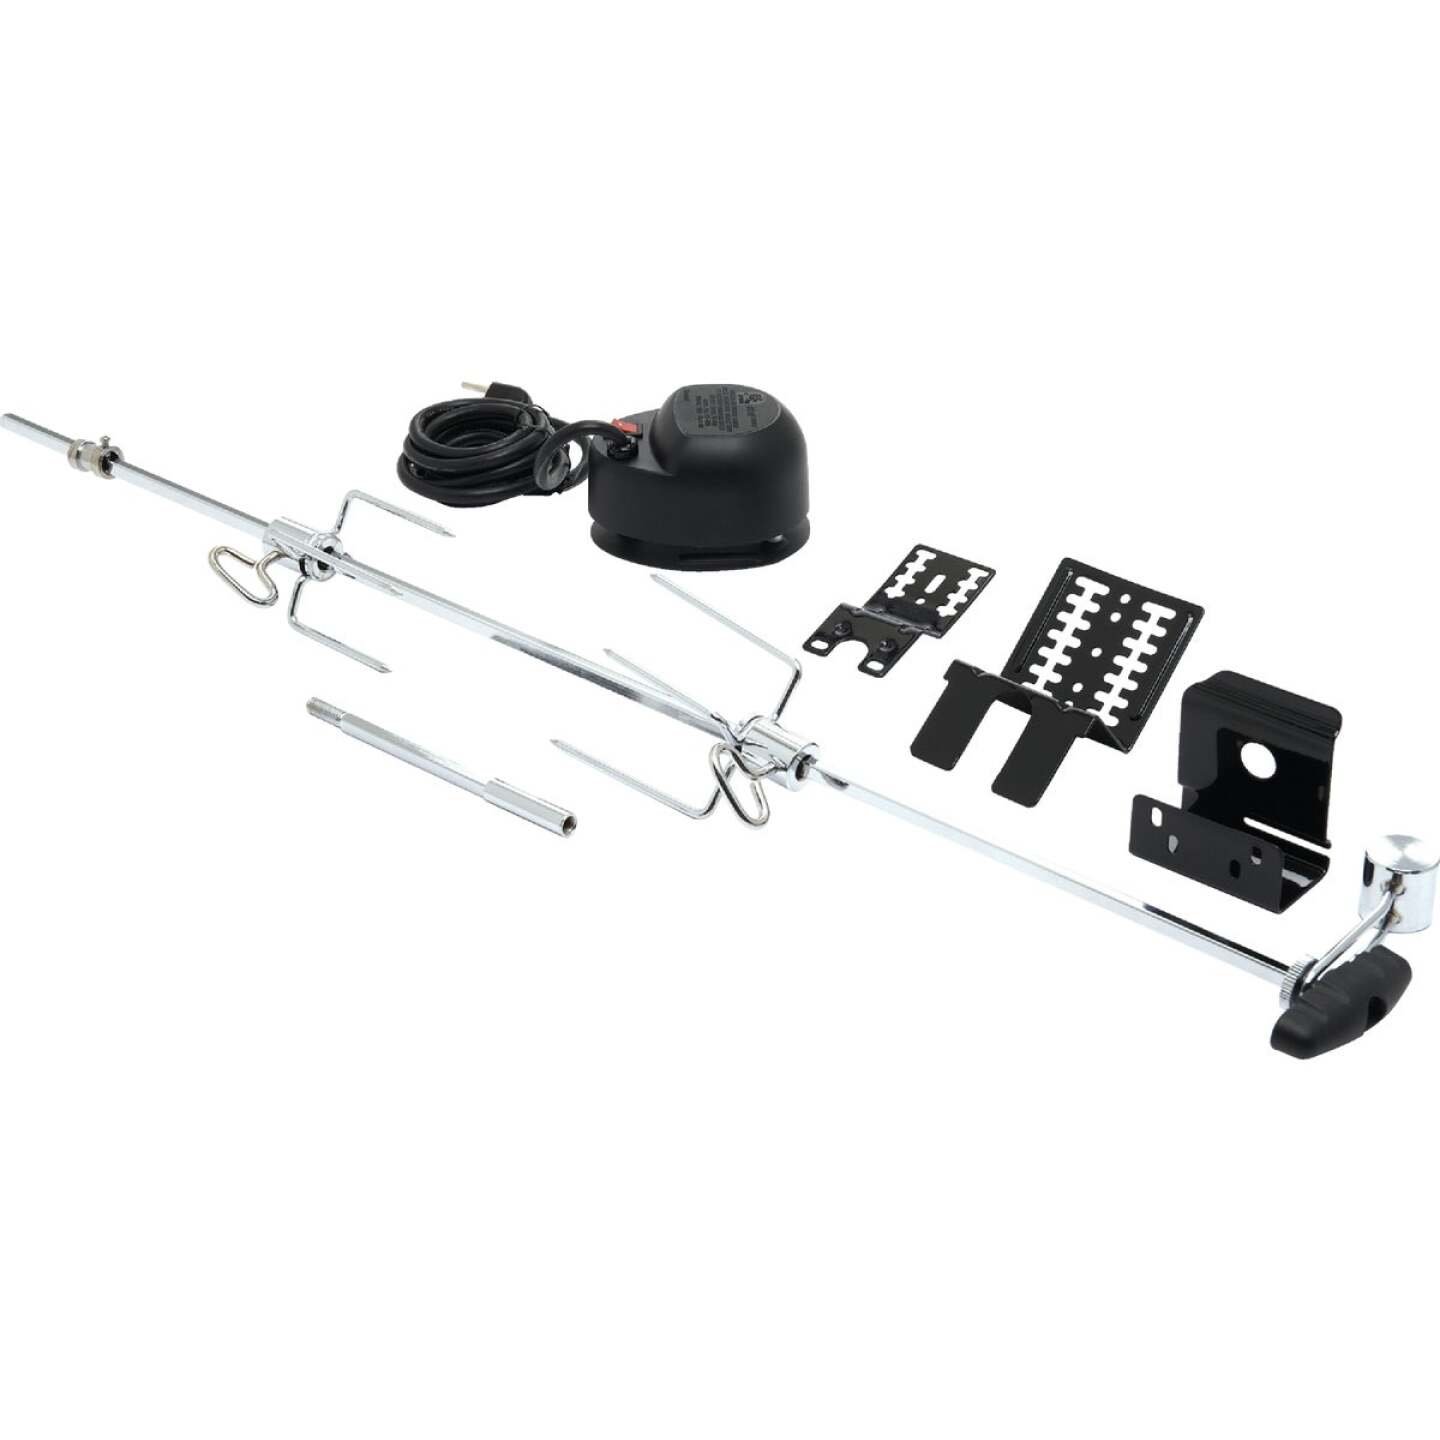 GrillPro 33.5 In. Aluminum Universal Grill Rotisserie Image 1